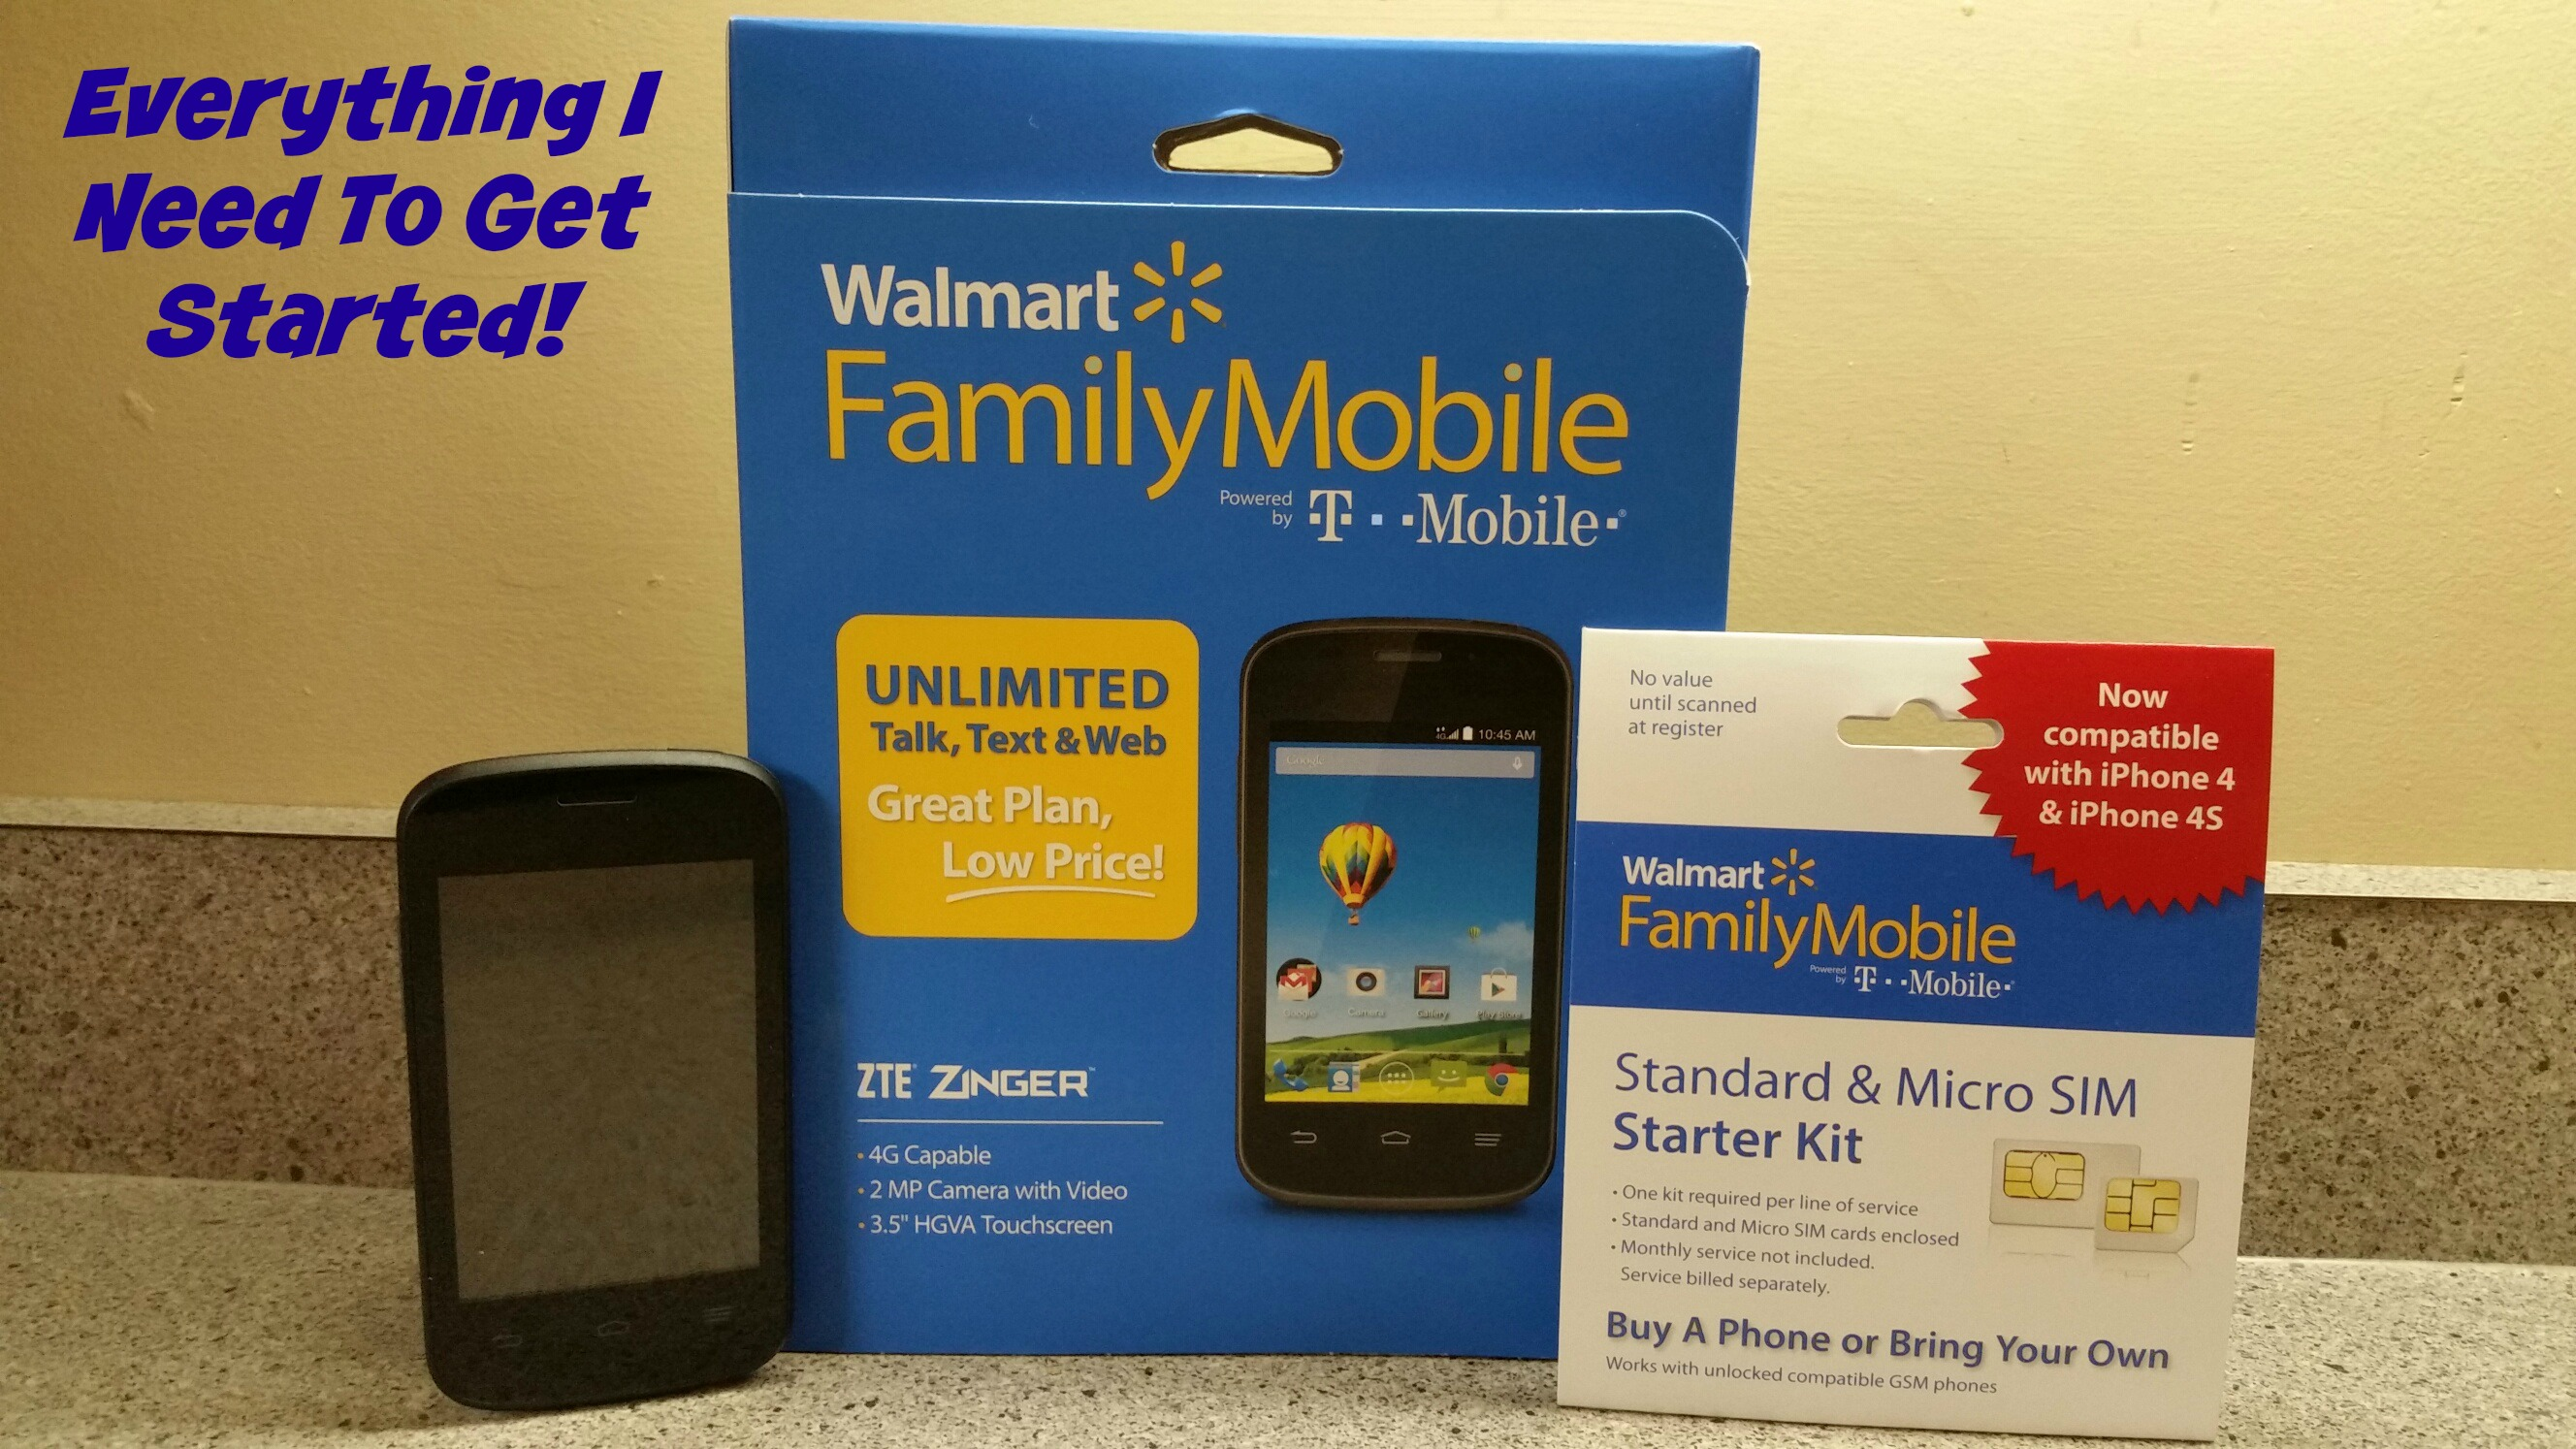 Lowest Priced Unlimited Plans Through Walmart Family Mobile Will